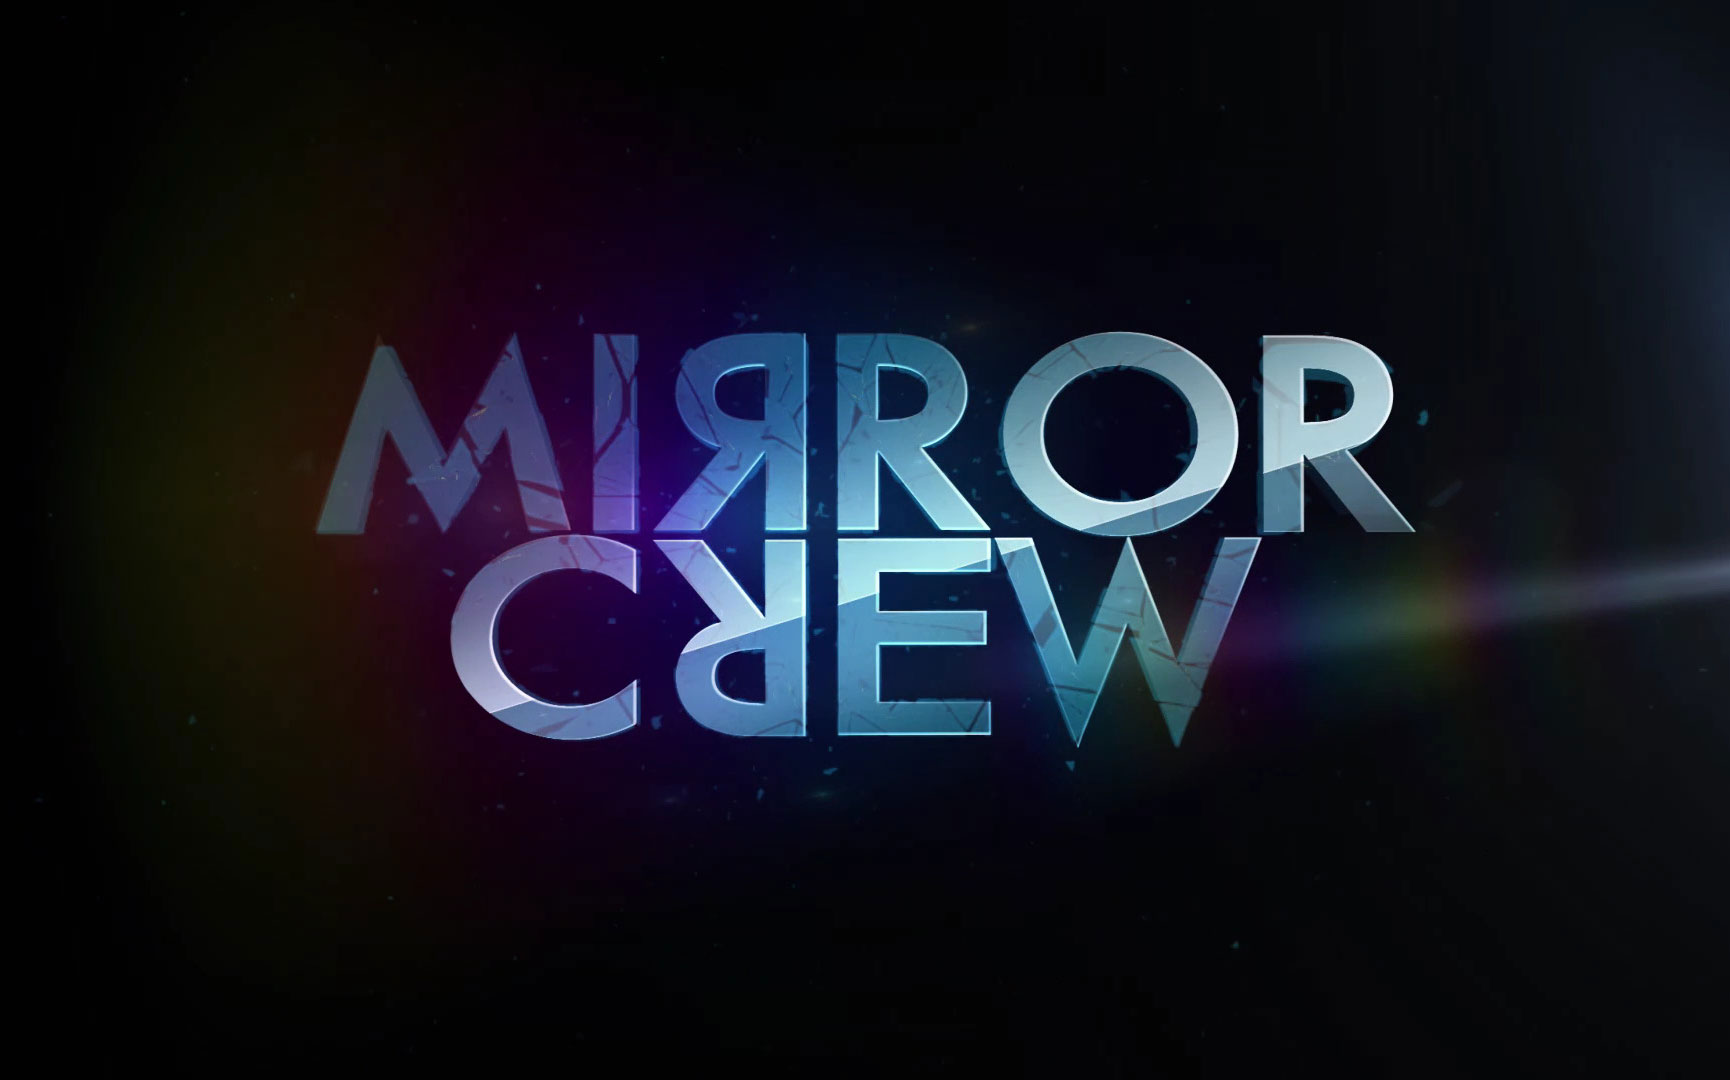 mirrorcrew.com